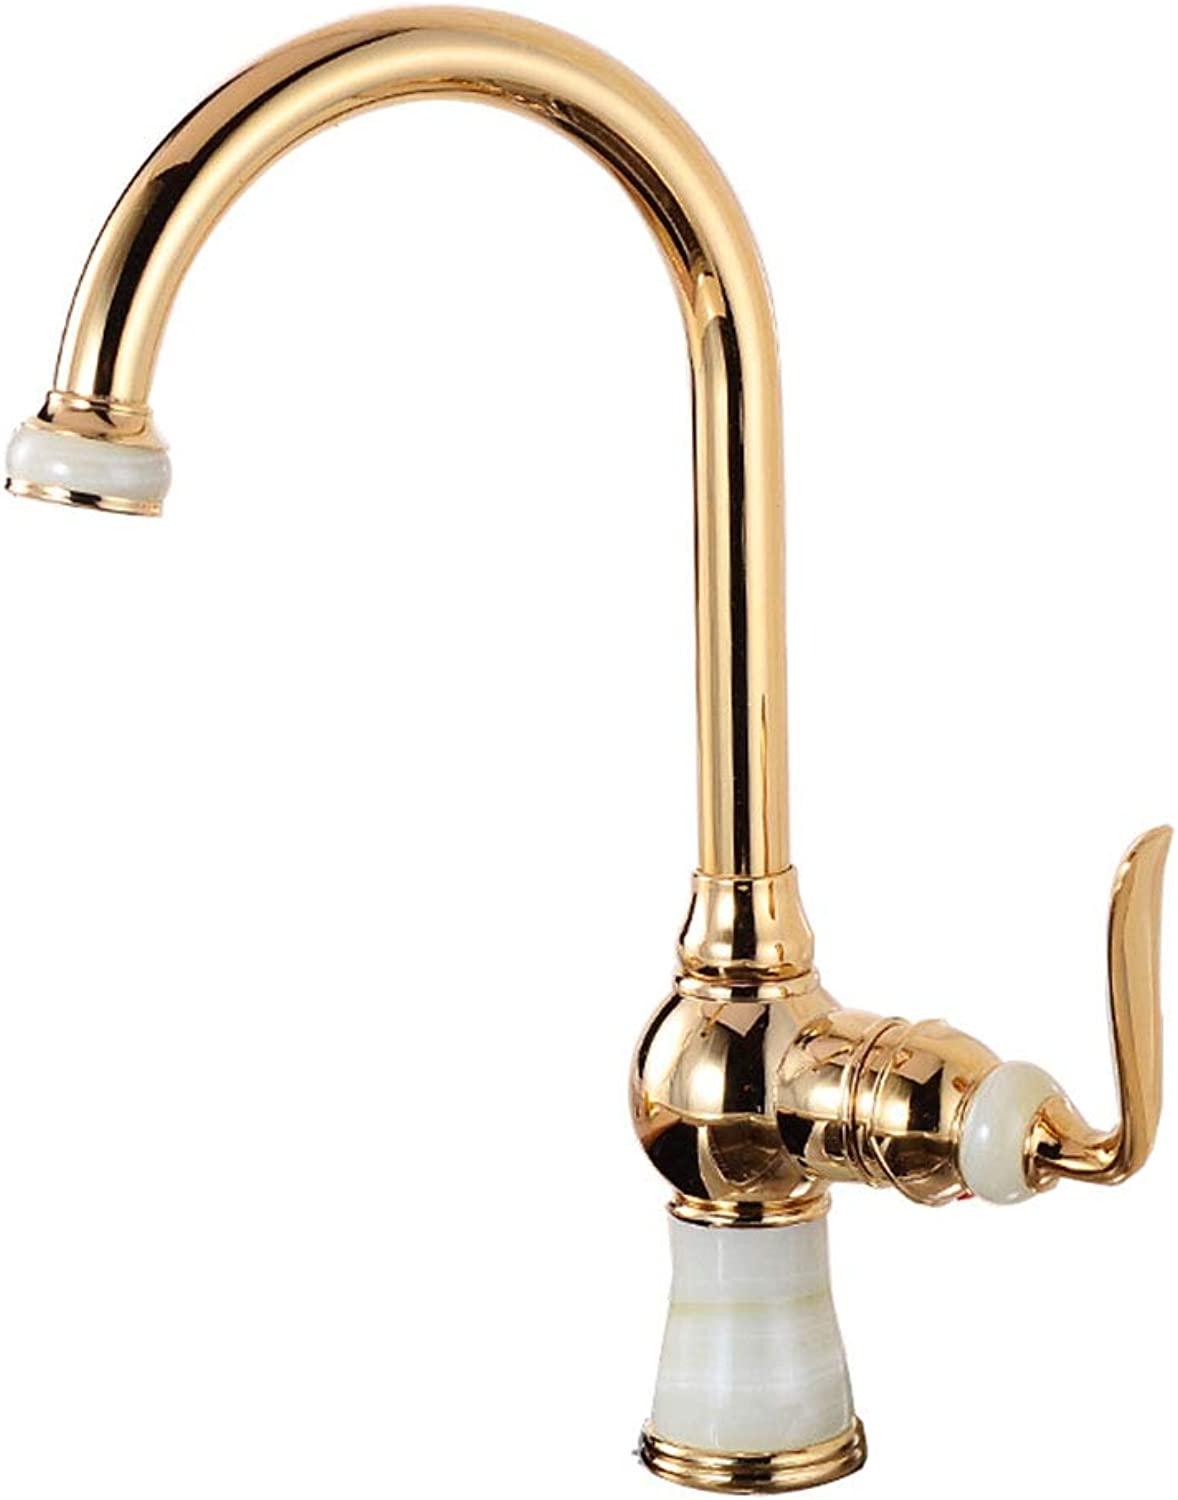 SEEKSUNG Kitchen Sink Mixer Taps,Single Handle One Hole Electroplated Standard Spout Free Standing Ordinary Kitchen Taps,for Kitchen Bathroom Sink